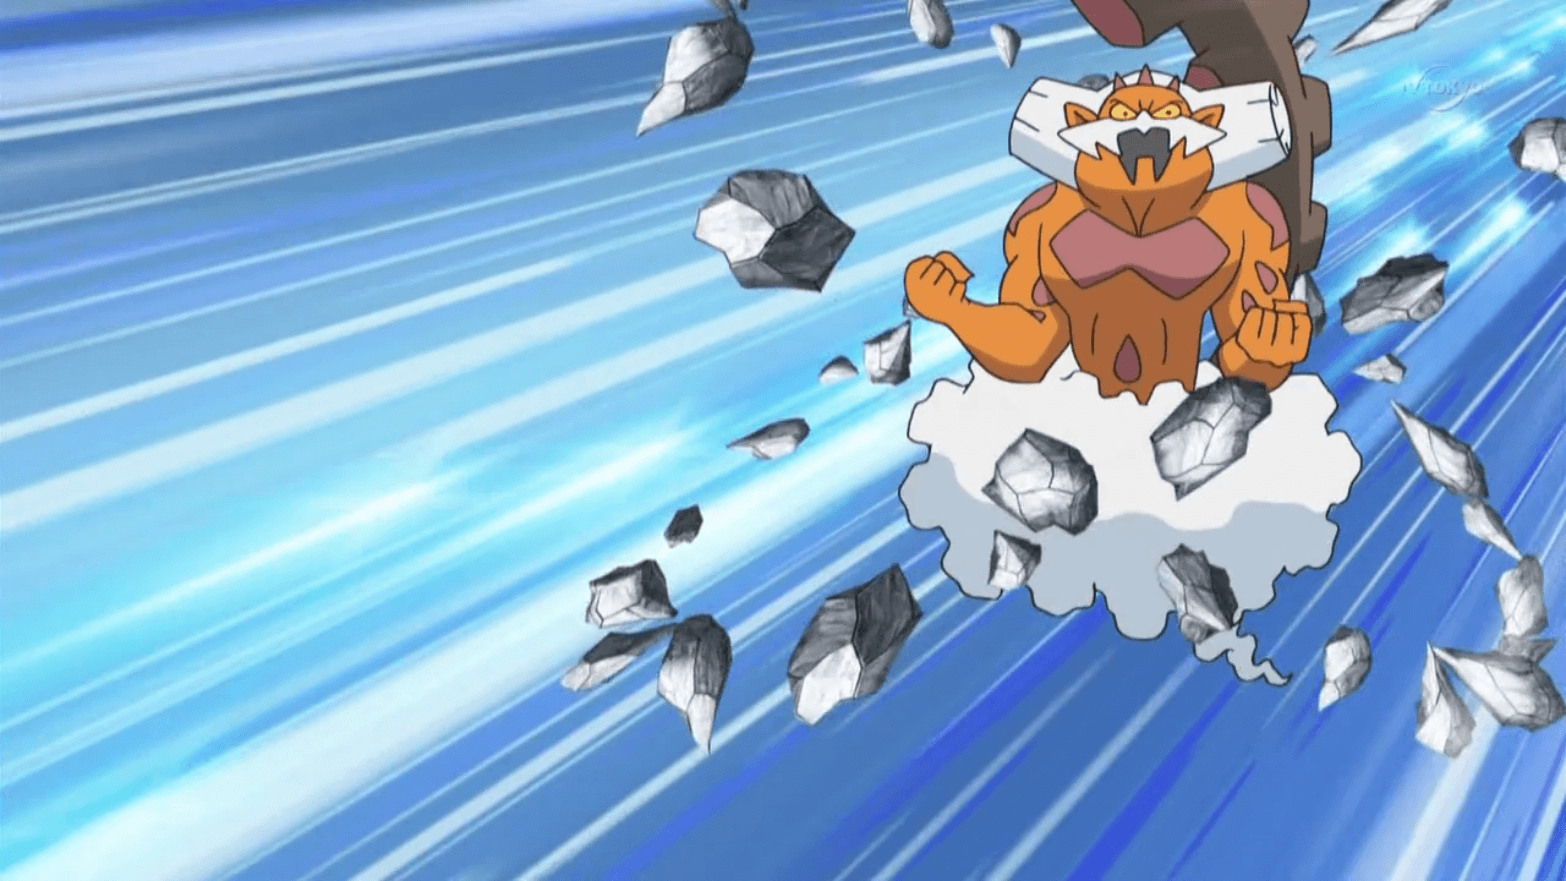 pokemon anime landorus obelisk - Google Search | Pokemon | Pinterest ...